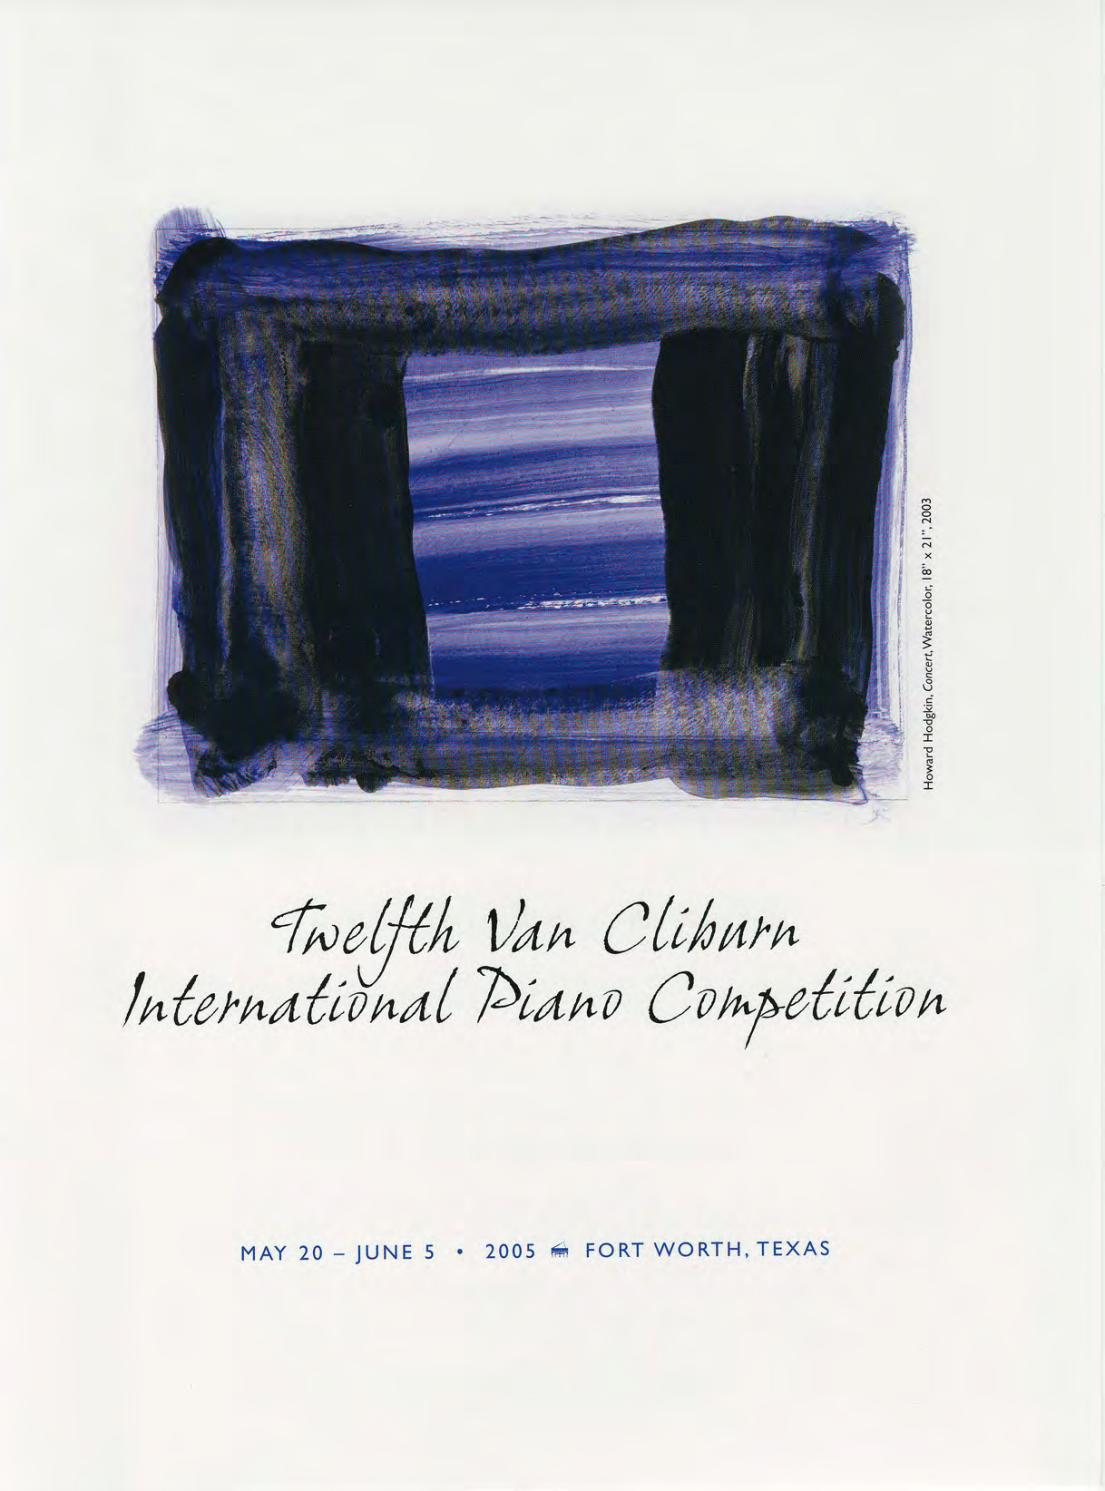 Twelfth Van Cliburn International Piano Competition Program